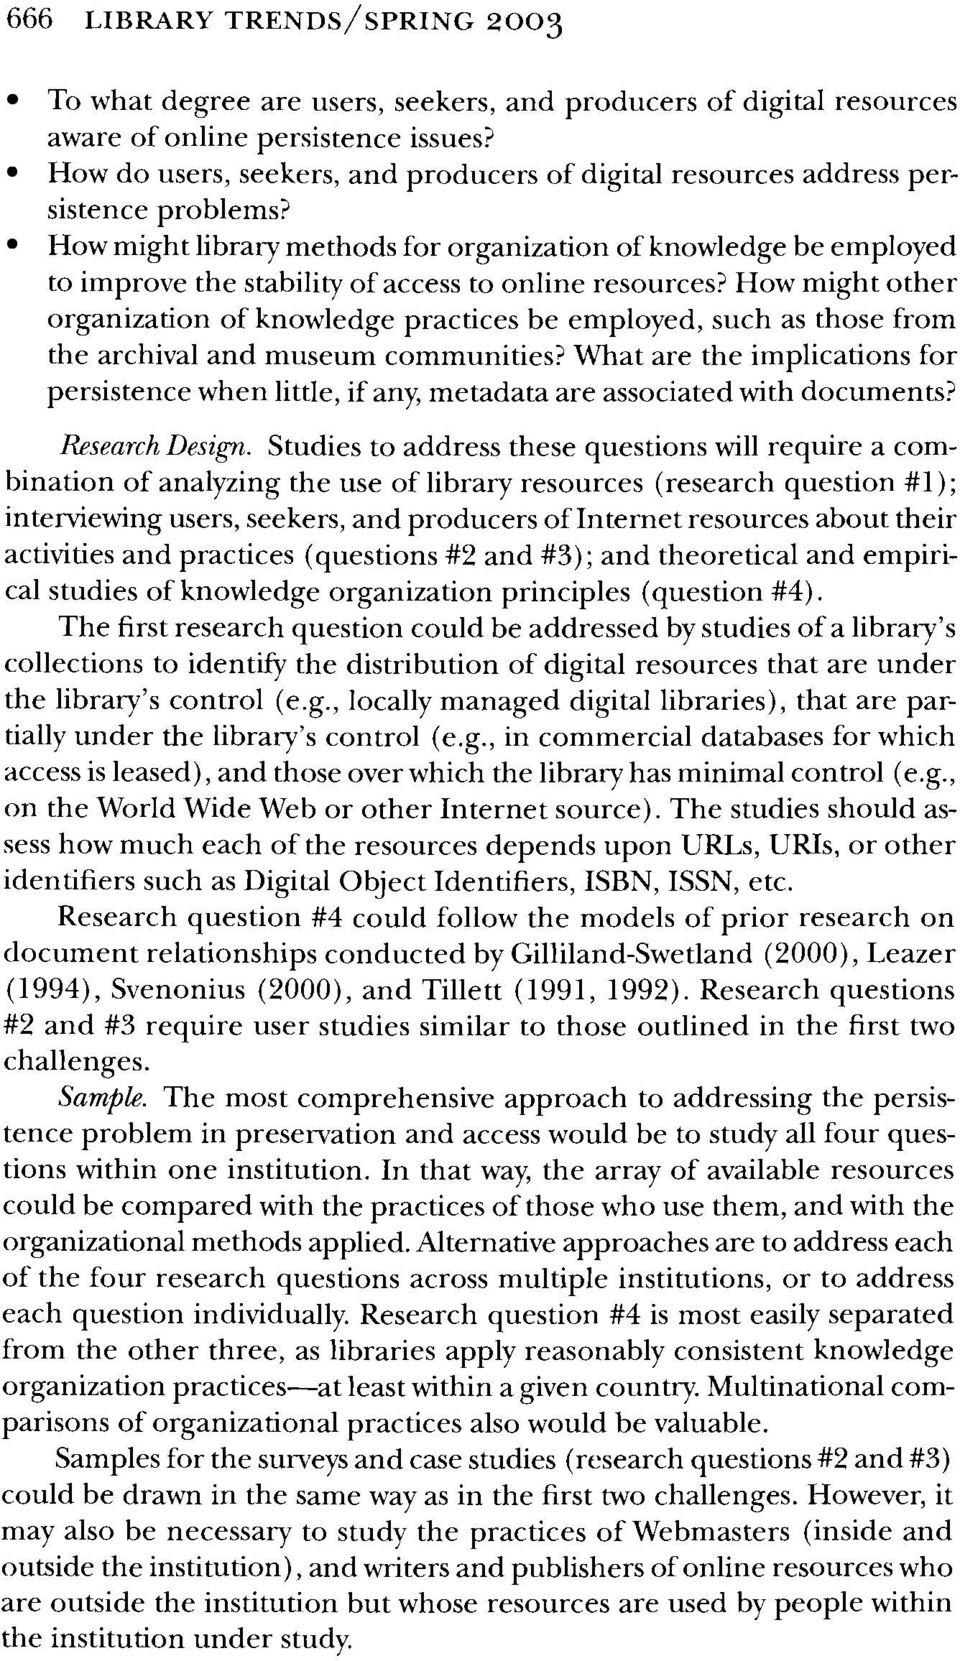 How might library methods for organization of knowledge be employed to improve the stability of access to online resources?